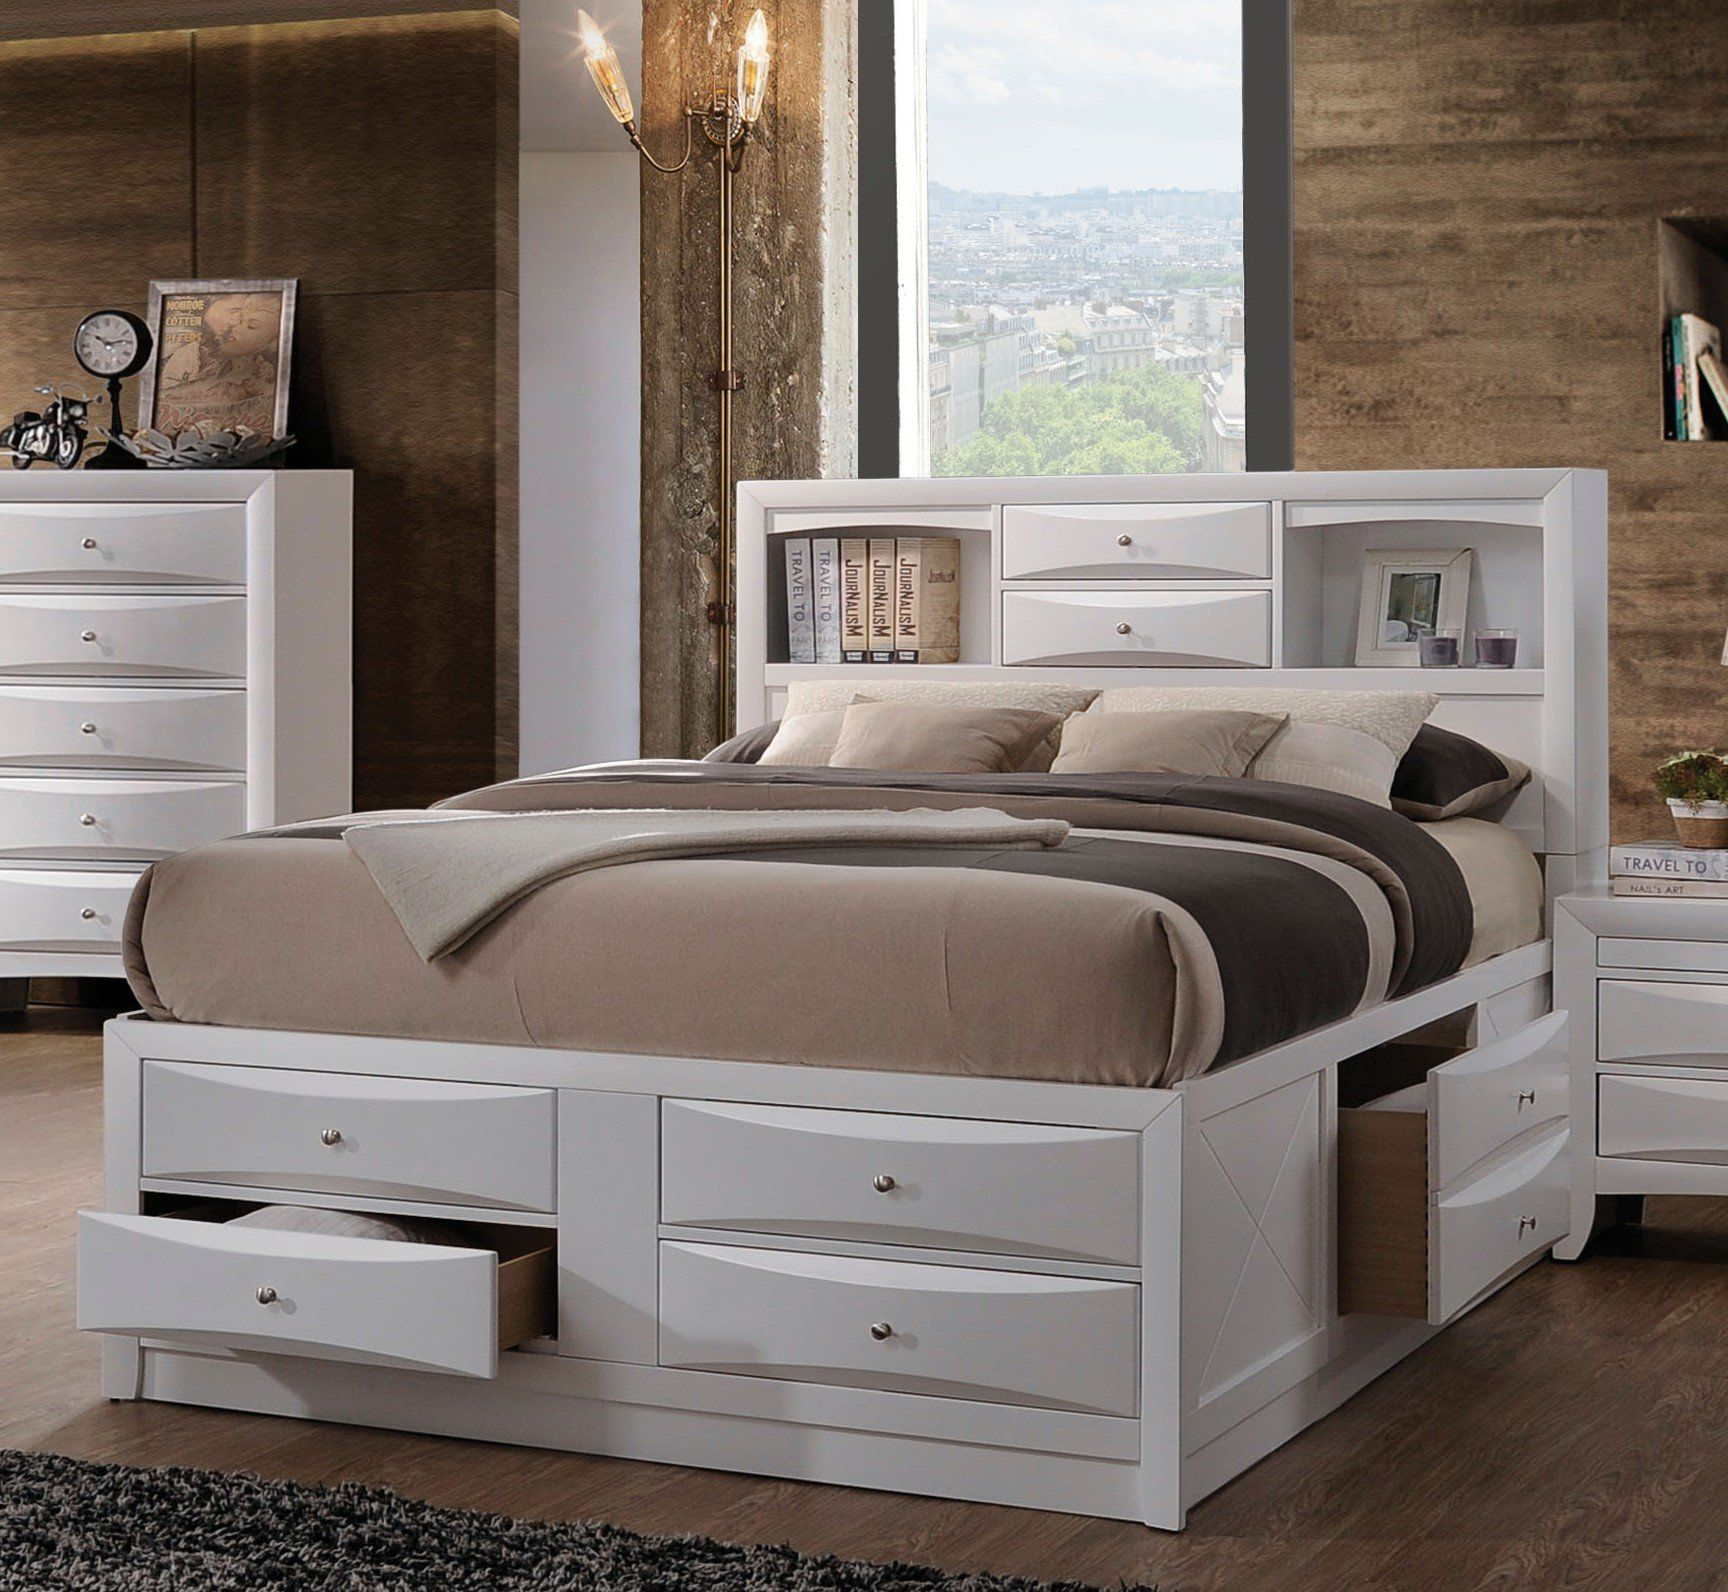 acme 21710f ireland white bookcase full storage bed with drawers